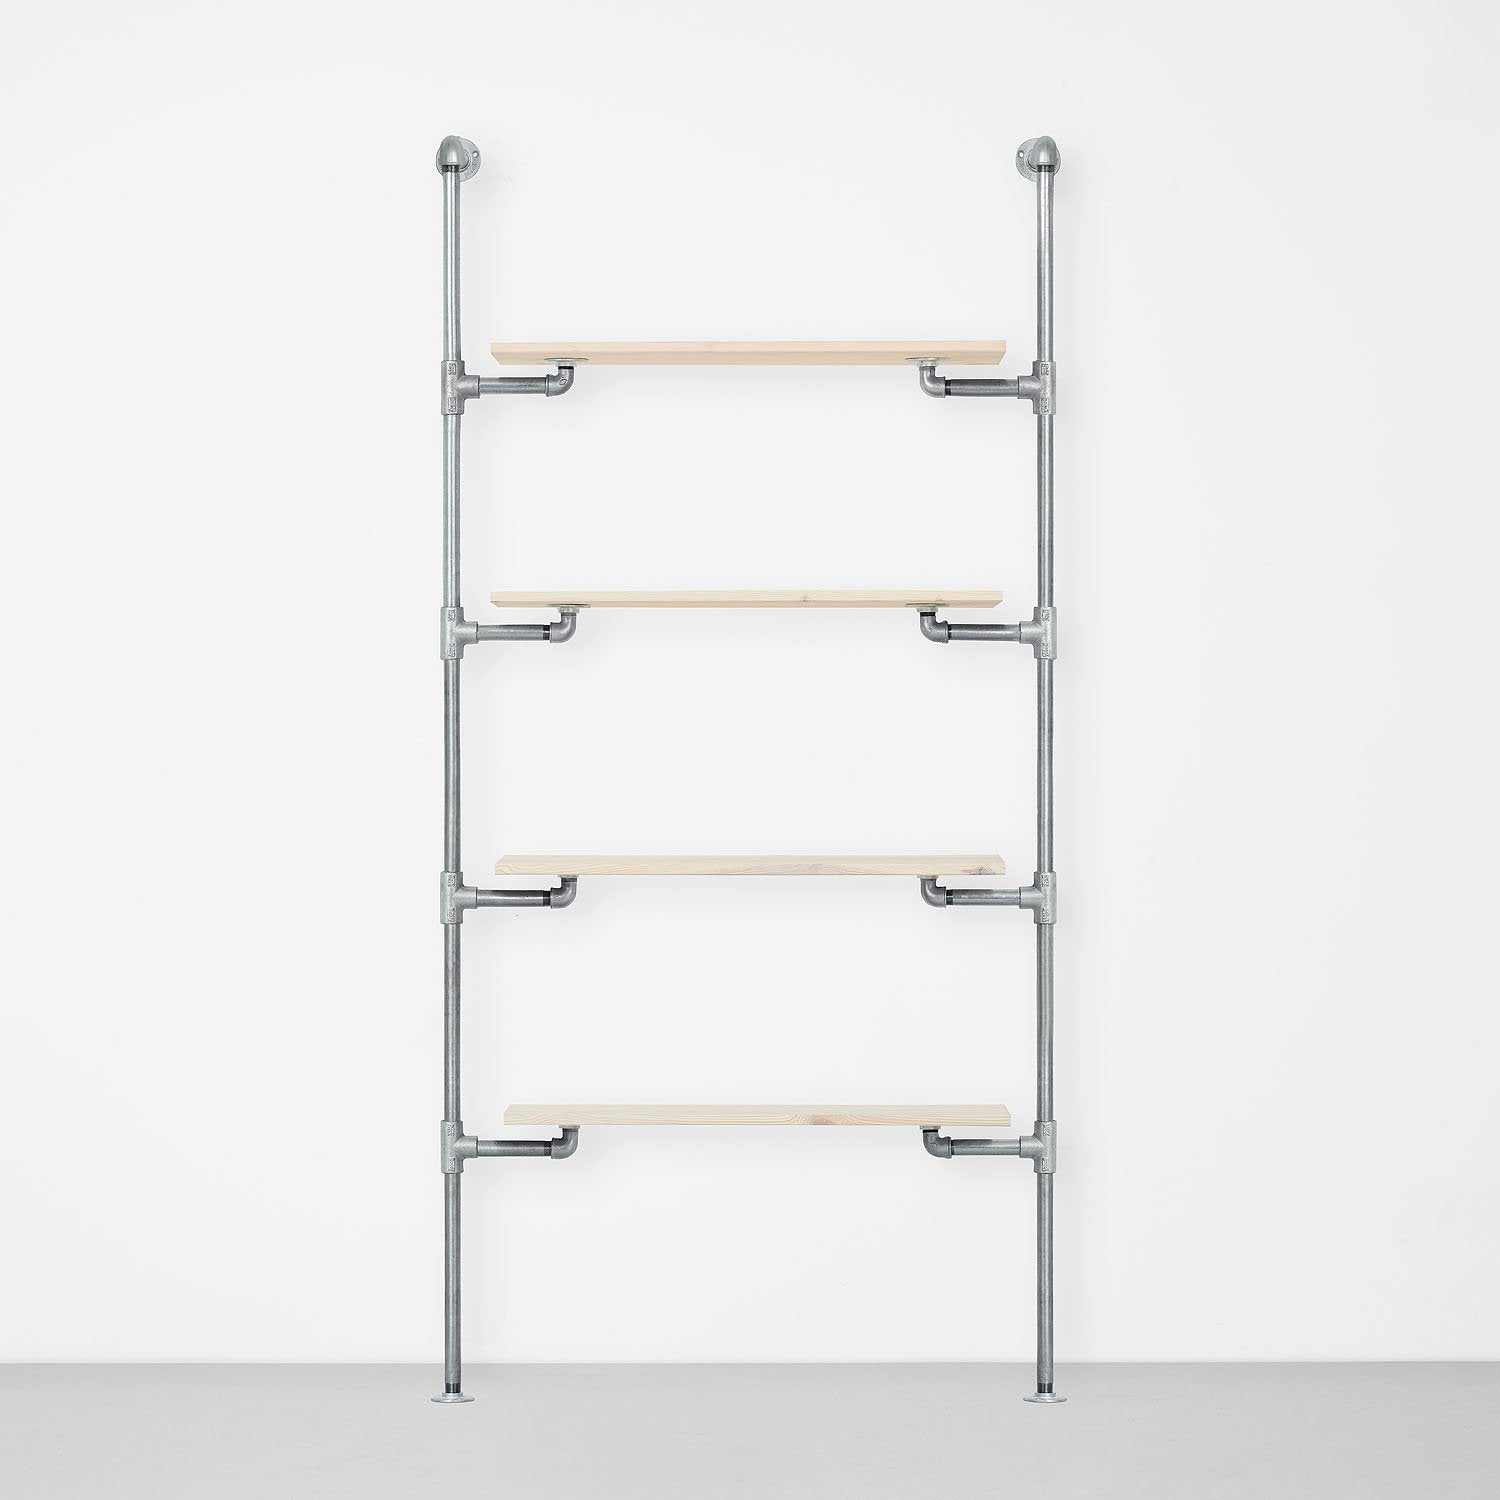 The Walk-In 1 row wardrobe system - (4 shelves)